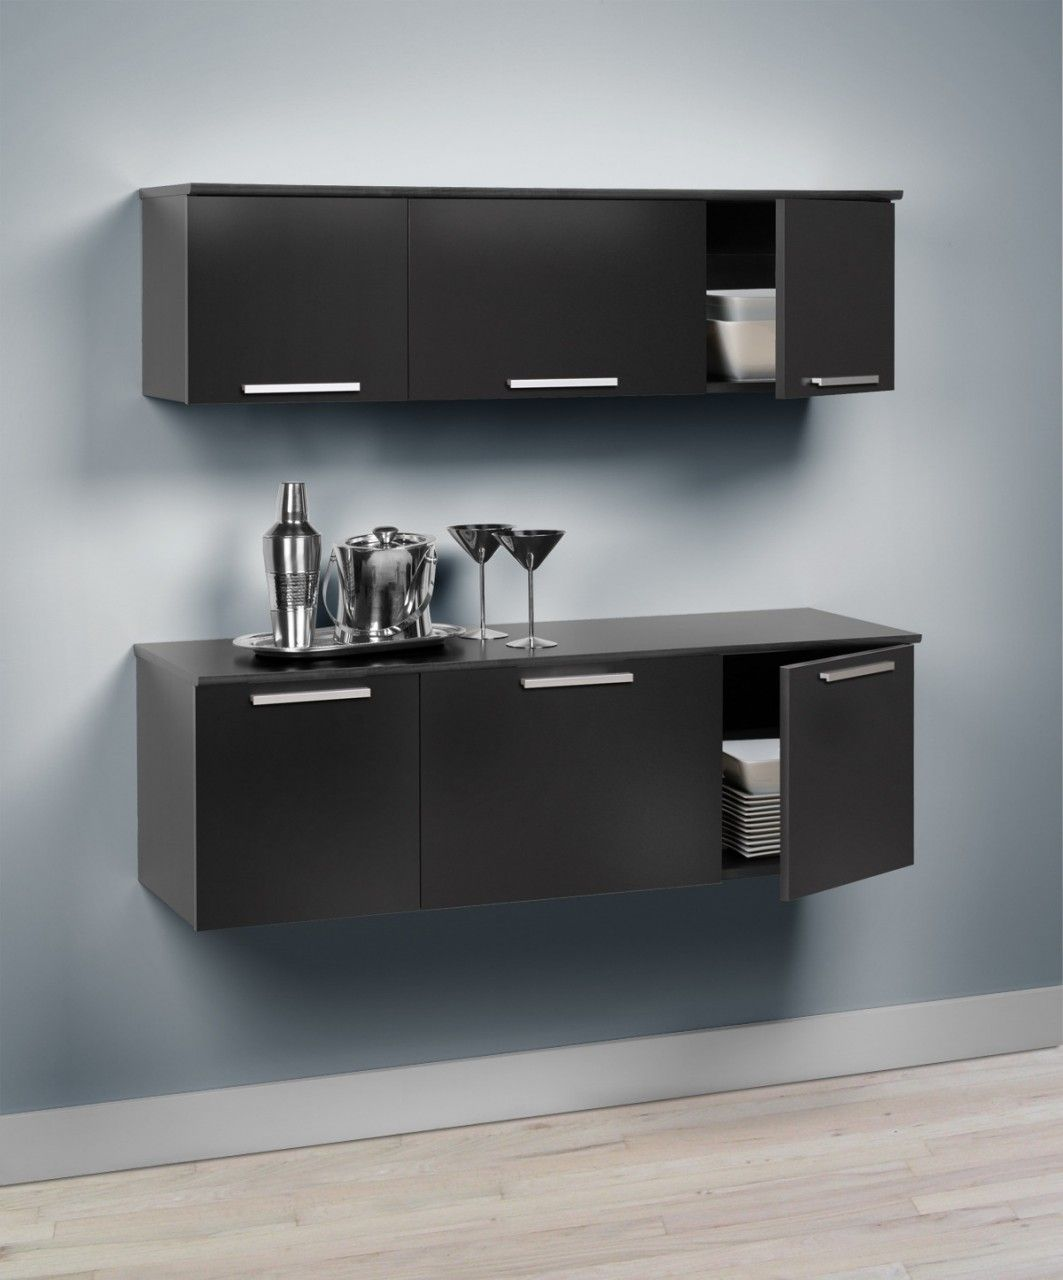 wall cabinets for office. Cabinet Storage Wall Cabinets For Office C